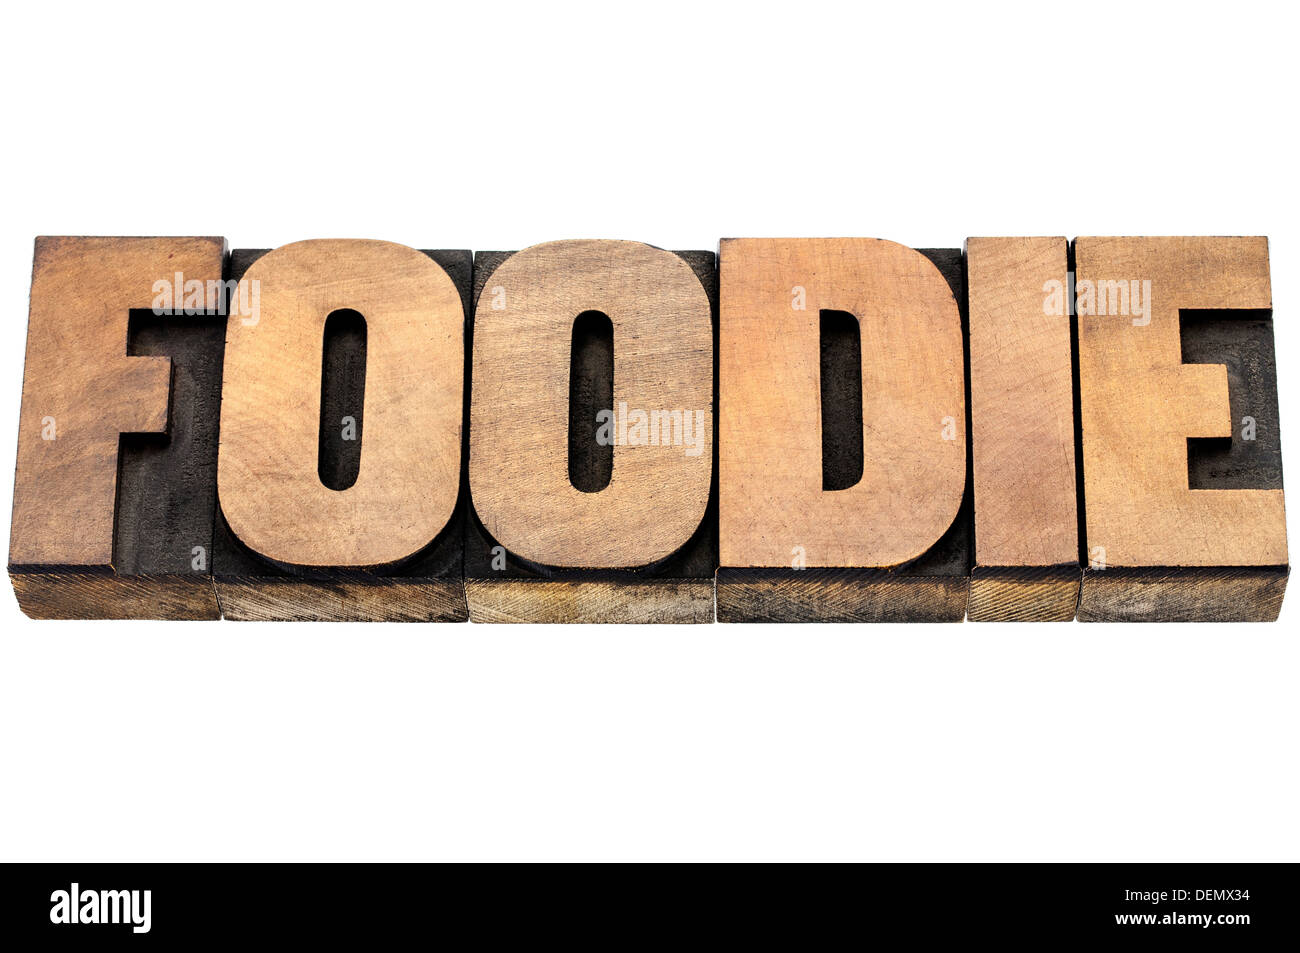 foodie word - isolated text in letterpress wood type - Stock Image